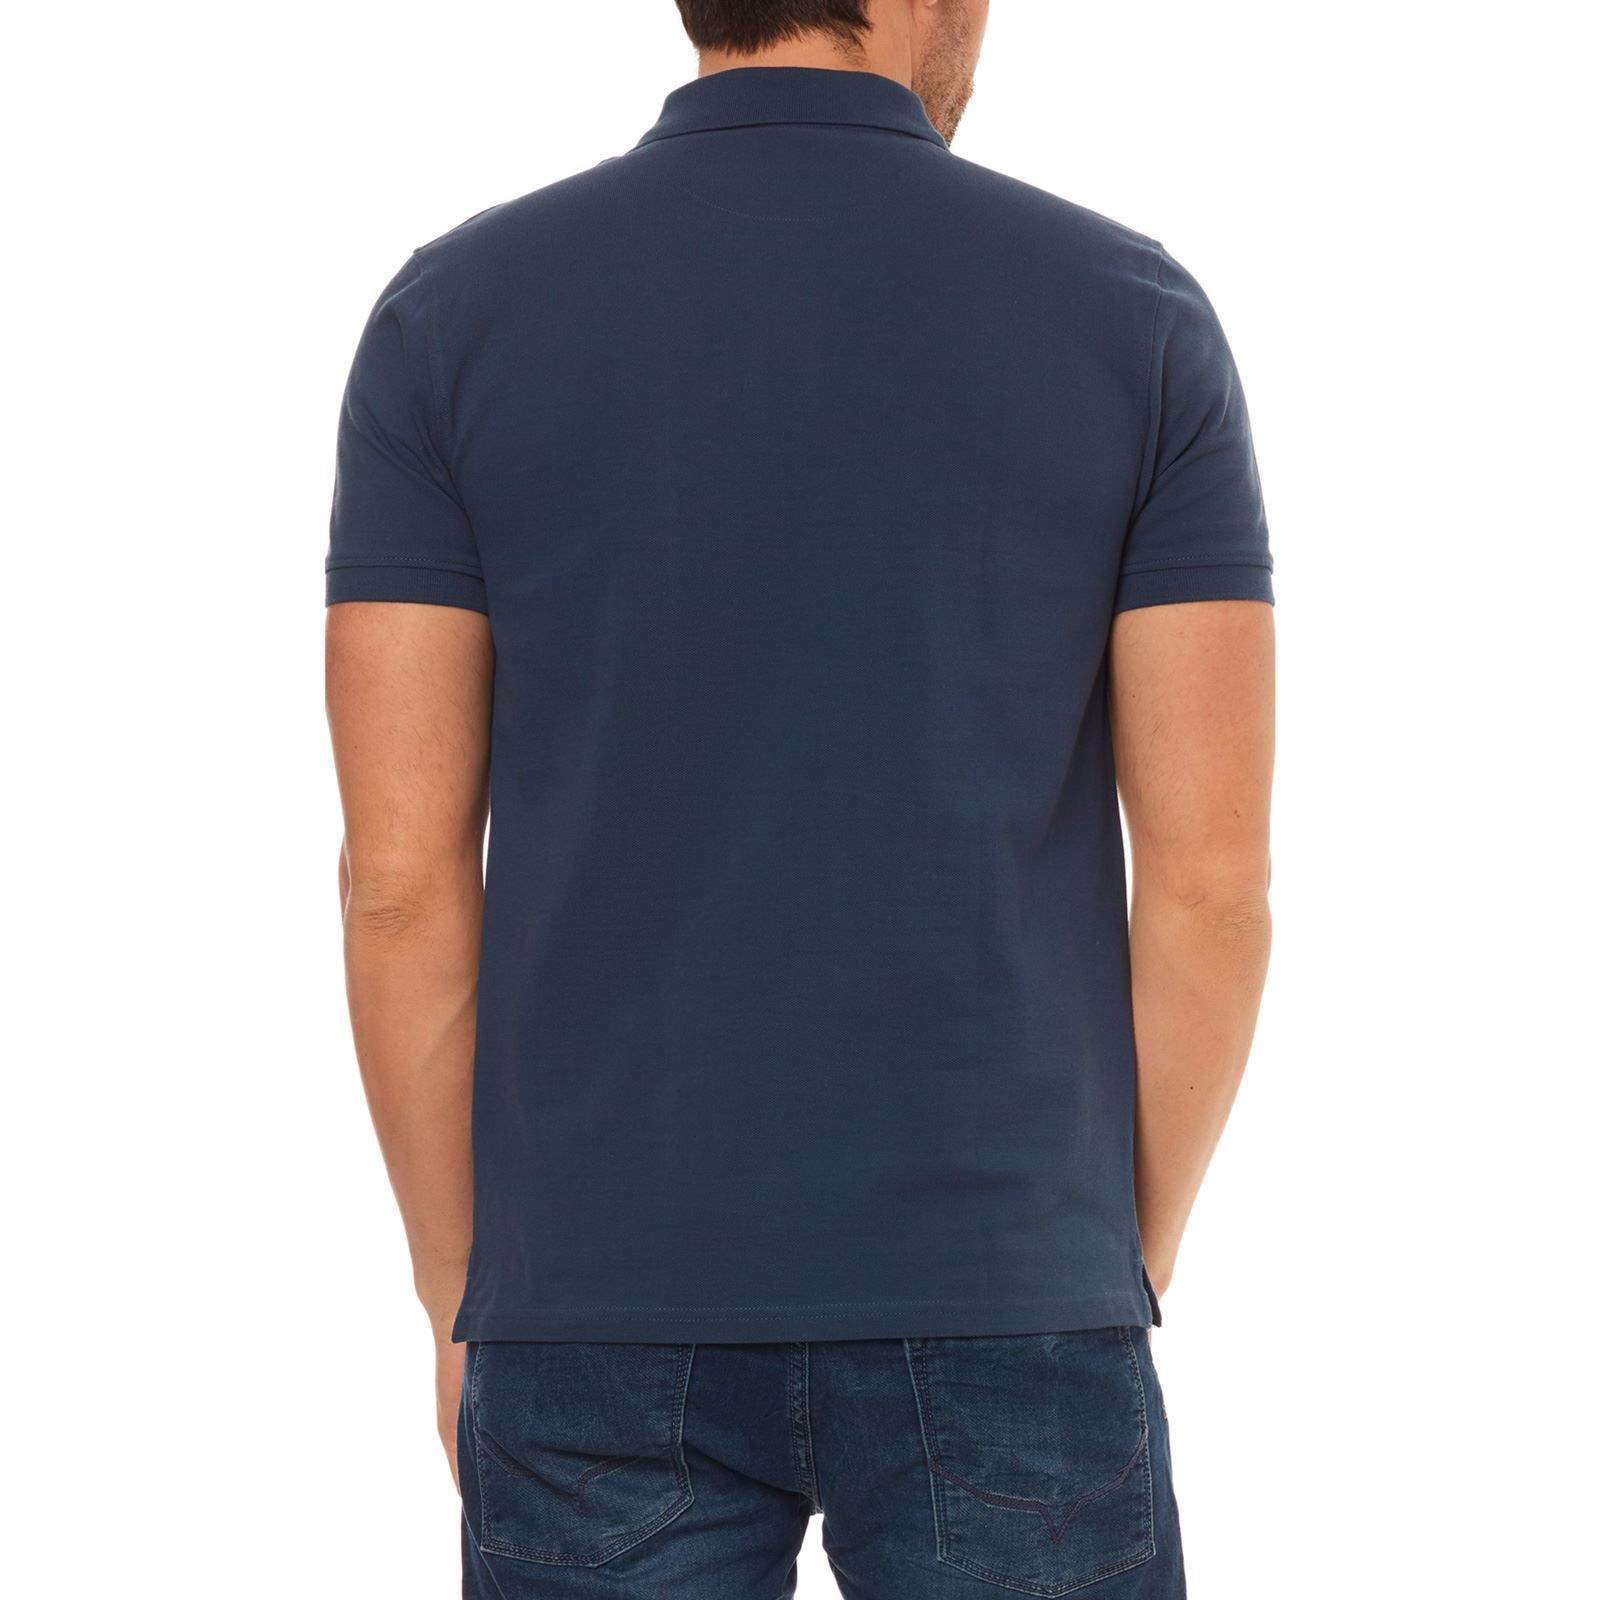 Timberland Timberland Polo Courtes Manches Courtes Manches Timberland Polo Bleu Bleu qxt7C1g